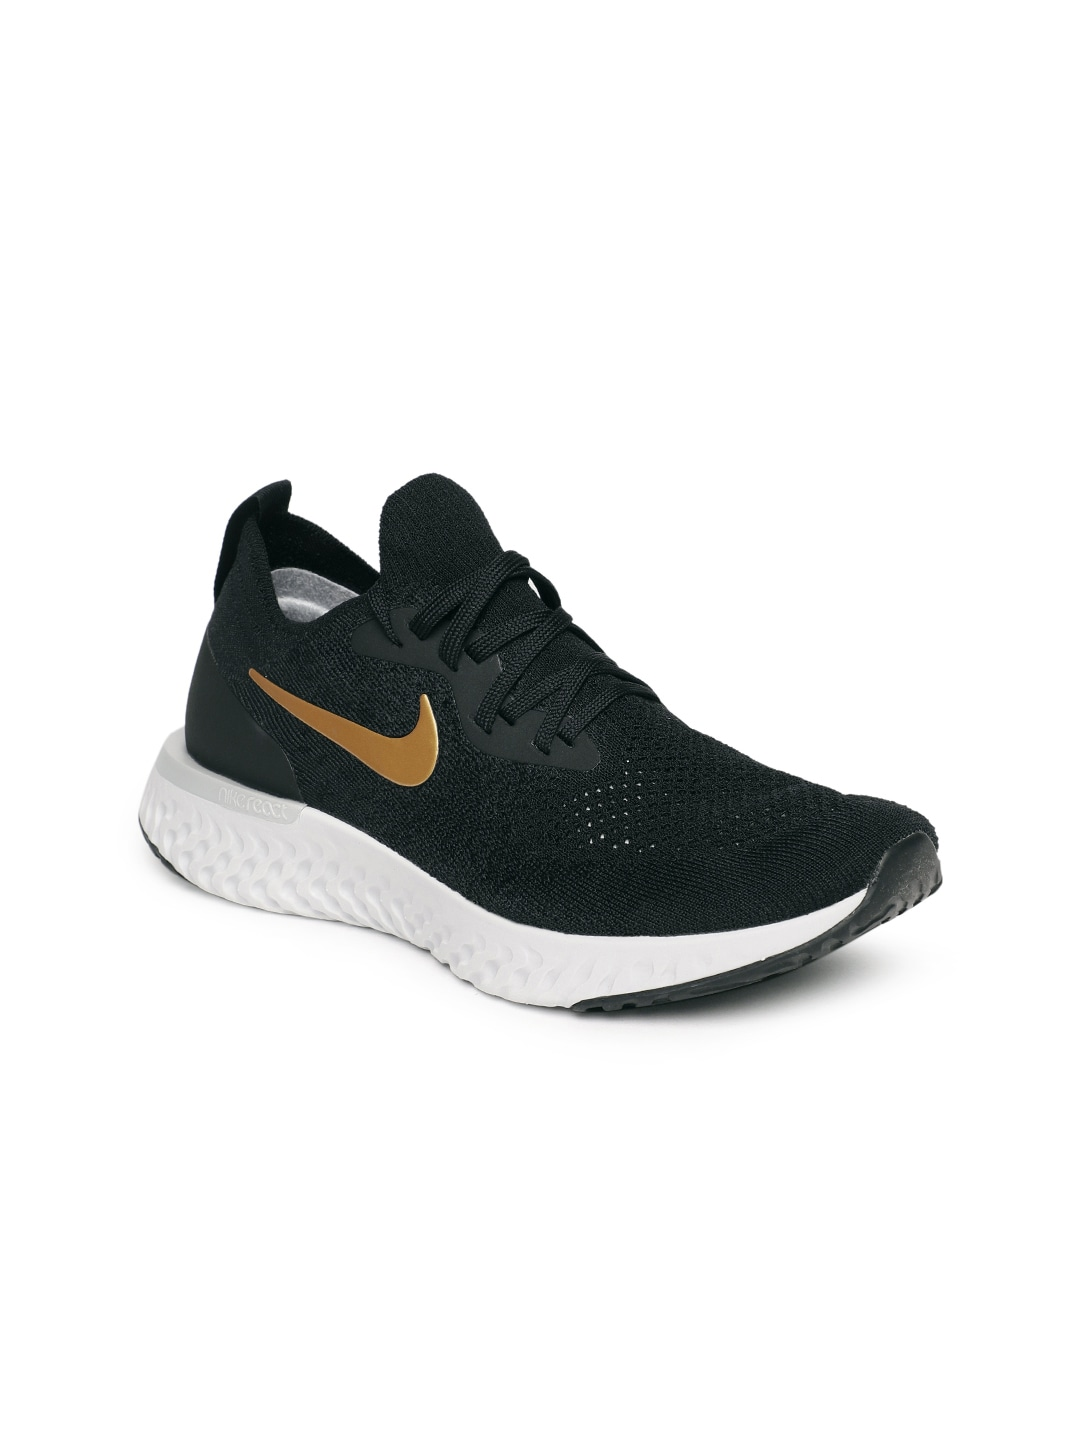 separation shoes b9e0c c9e04 Shoes - Buy Shoes for Men, Women & Kids online in India - Myntra